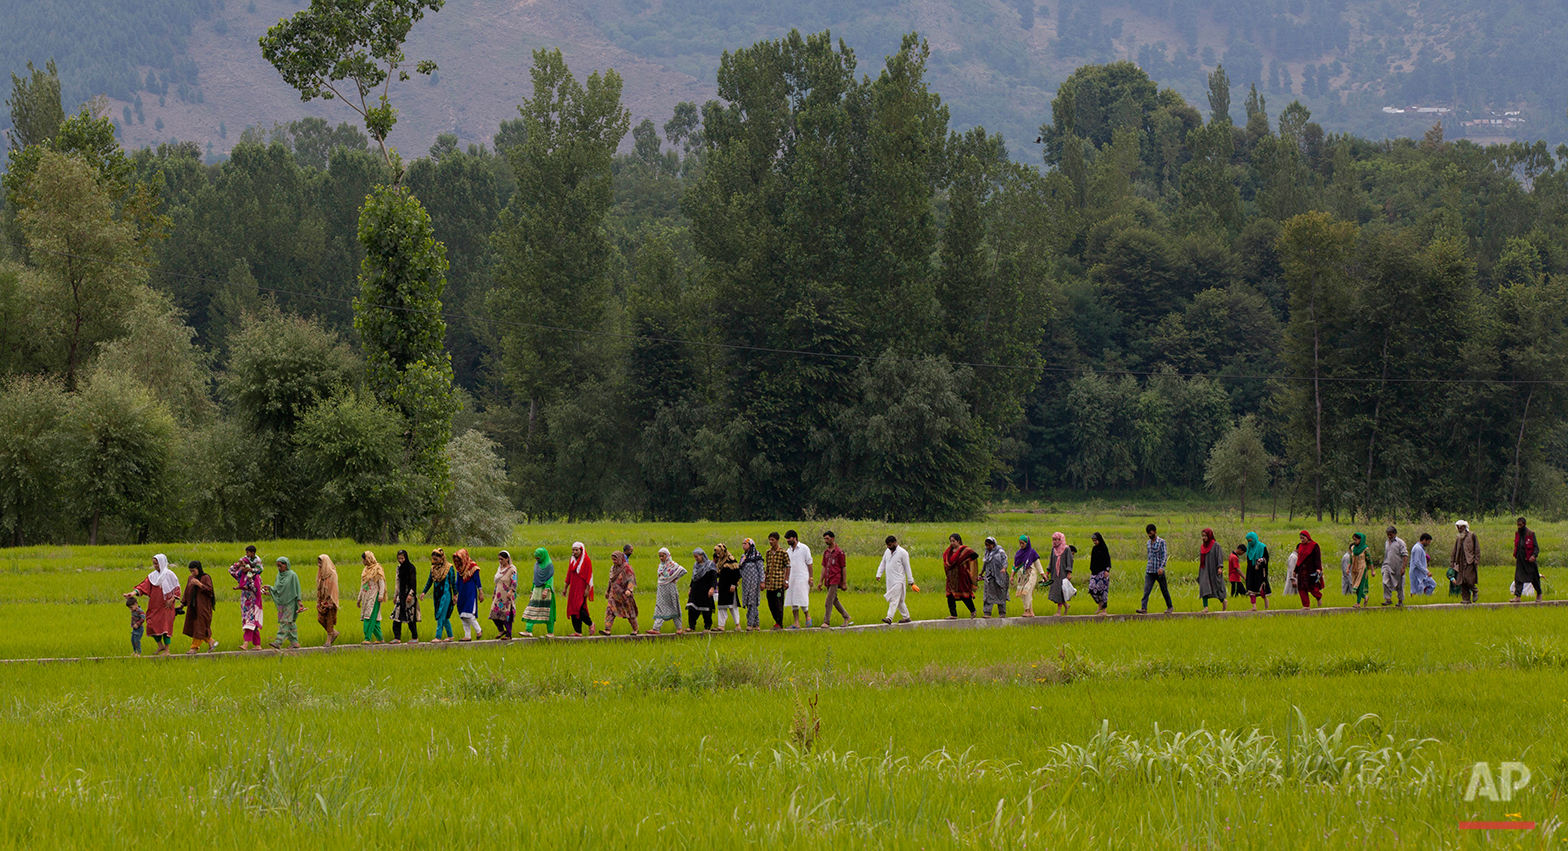 Kashmiri villagers walk to attend the funeral of Burhan Wani, chief of operations of Indian Kashmir's largest rebel group Hizbul Mujahideen, in Tral, some 38 Kilometers (24 miles) south of Srinagar, Indian controlled Kashmir, Saturday, July 9, 2016. Indian troops fired on protesters in Kashmir as tens of thousands of Kashmiris defied a curfew imposed in most parts of the troubled region Saturday and participated in the funeral of the top rebel commander killed by Indian government forces, officials and locals said. (AP Photo/Dar Yasin)